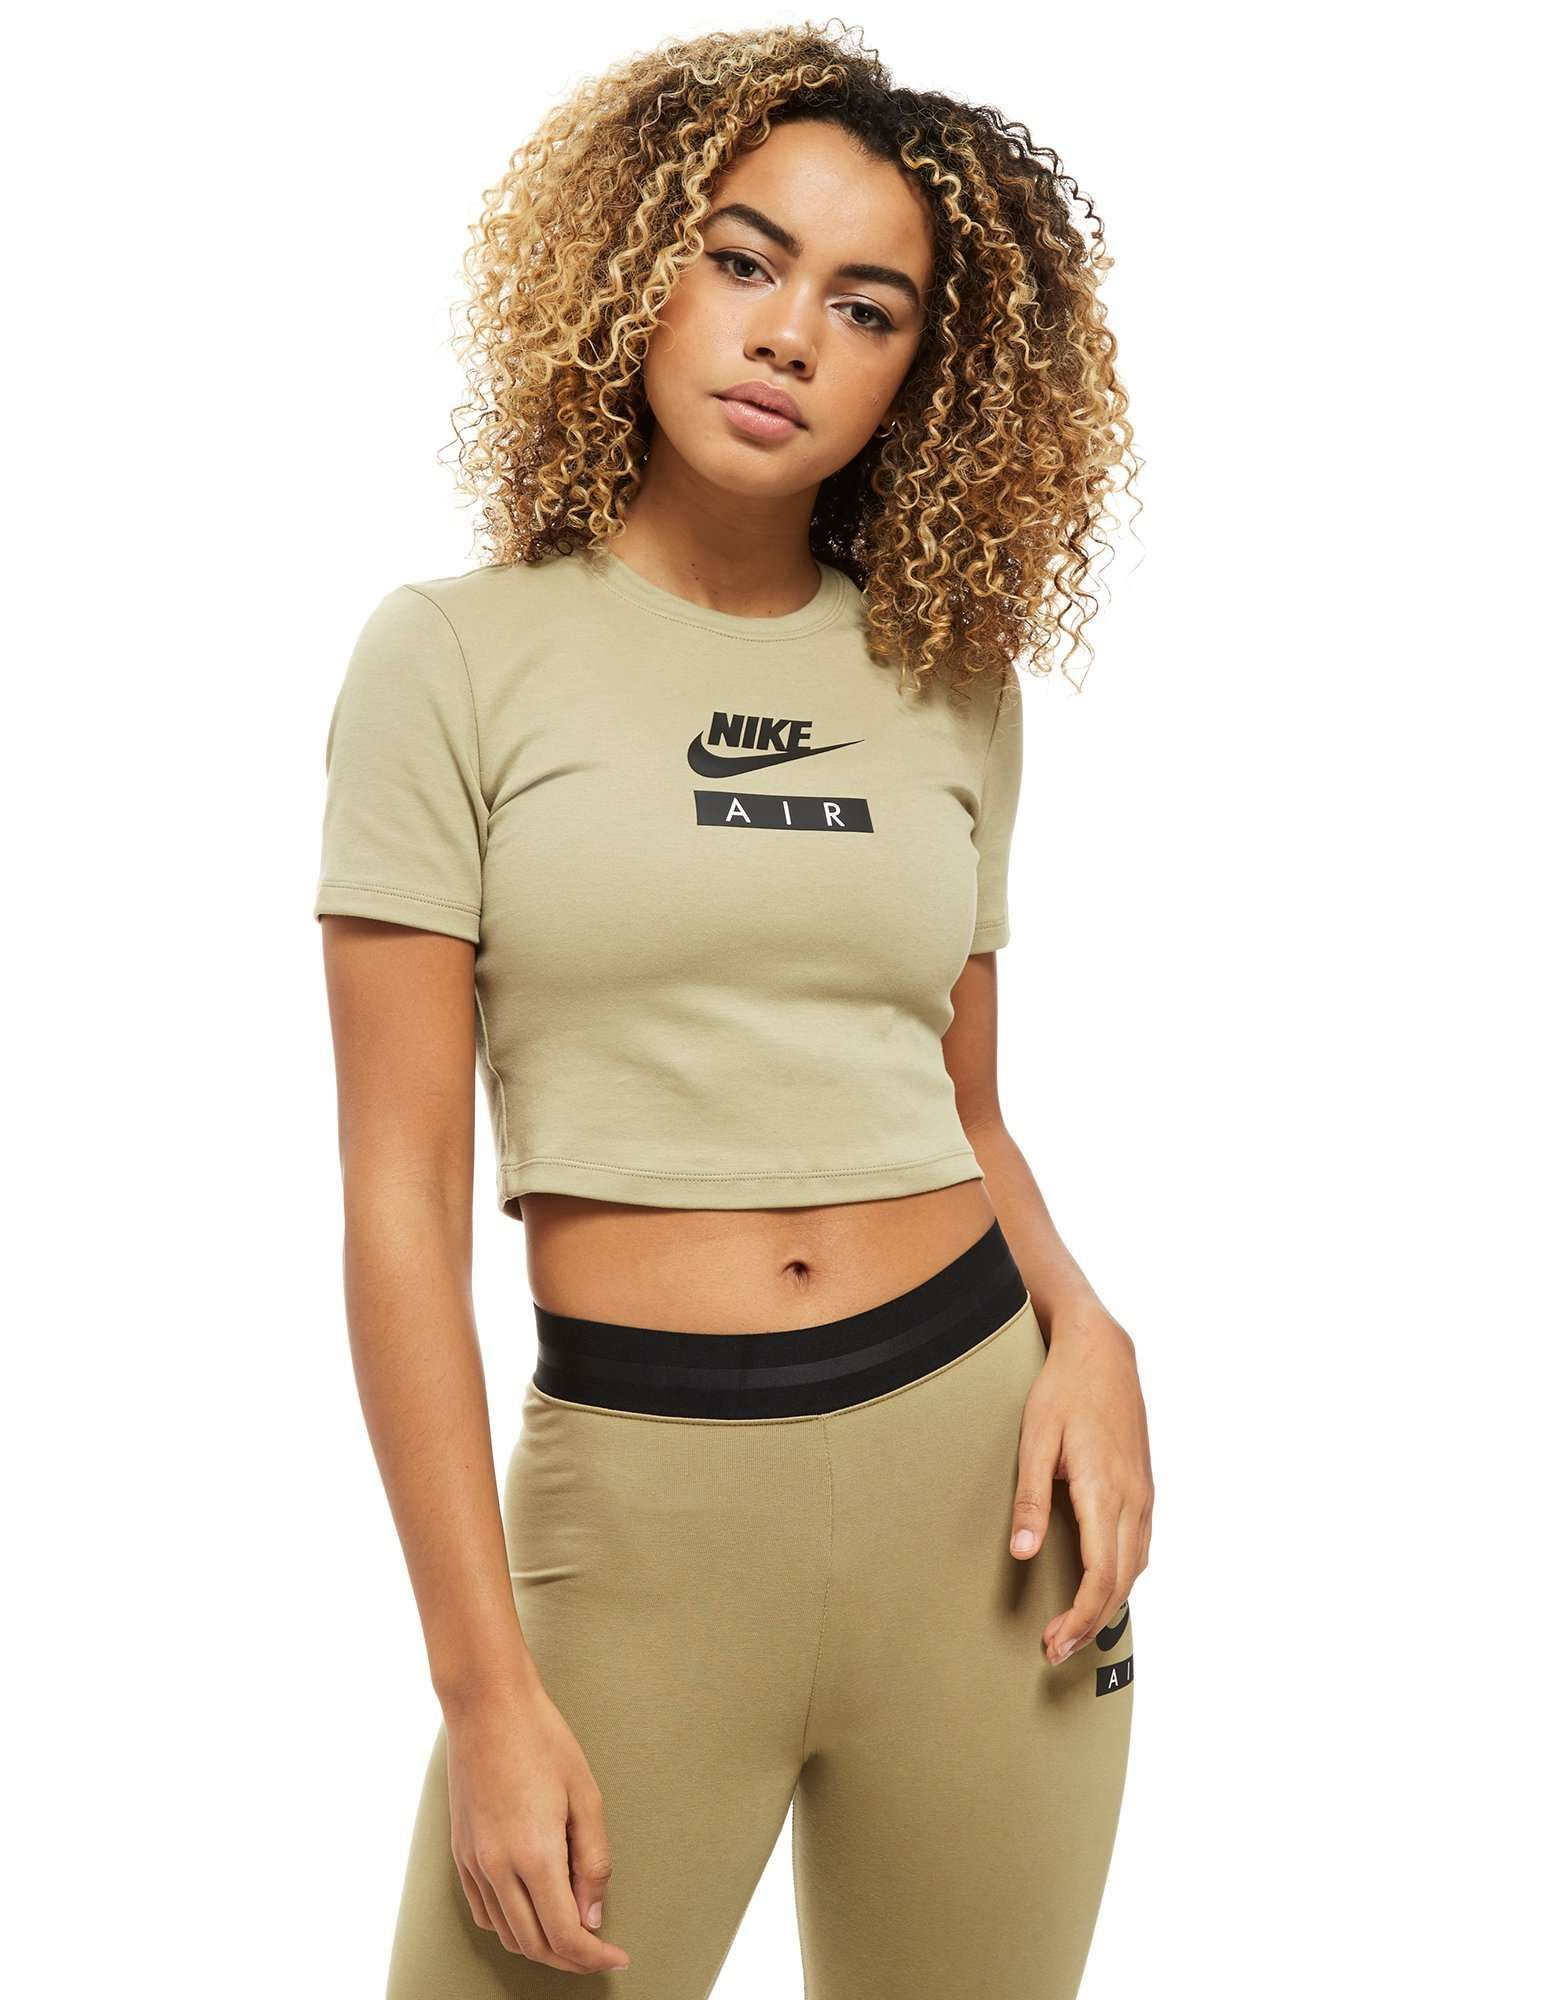 Nike Air Slim T-Shirt - Shop online for Nike Air Slim T-Shirt with JD Sports,  the UK s leading sports fashion retailer. c42994ad9961